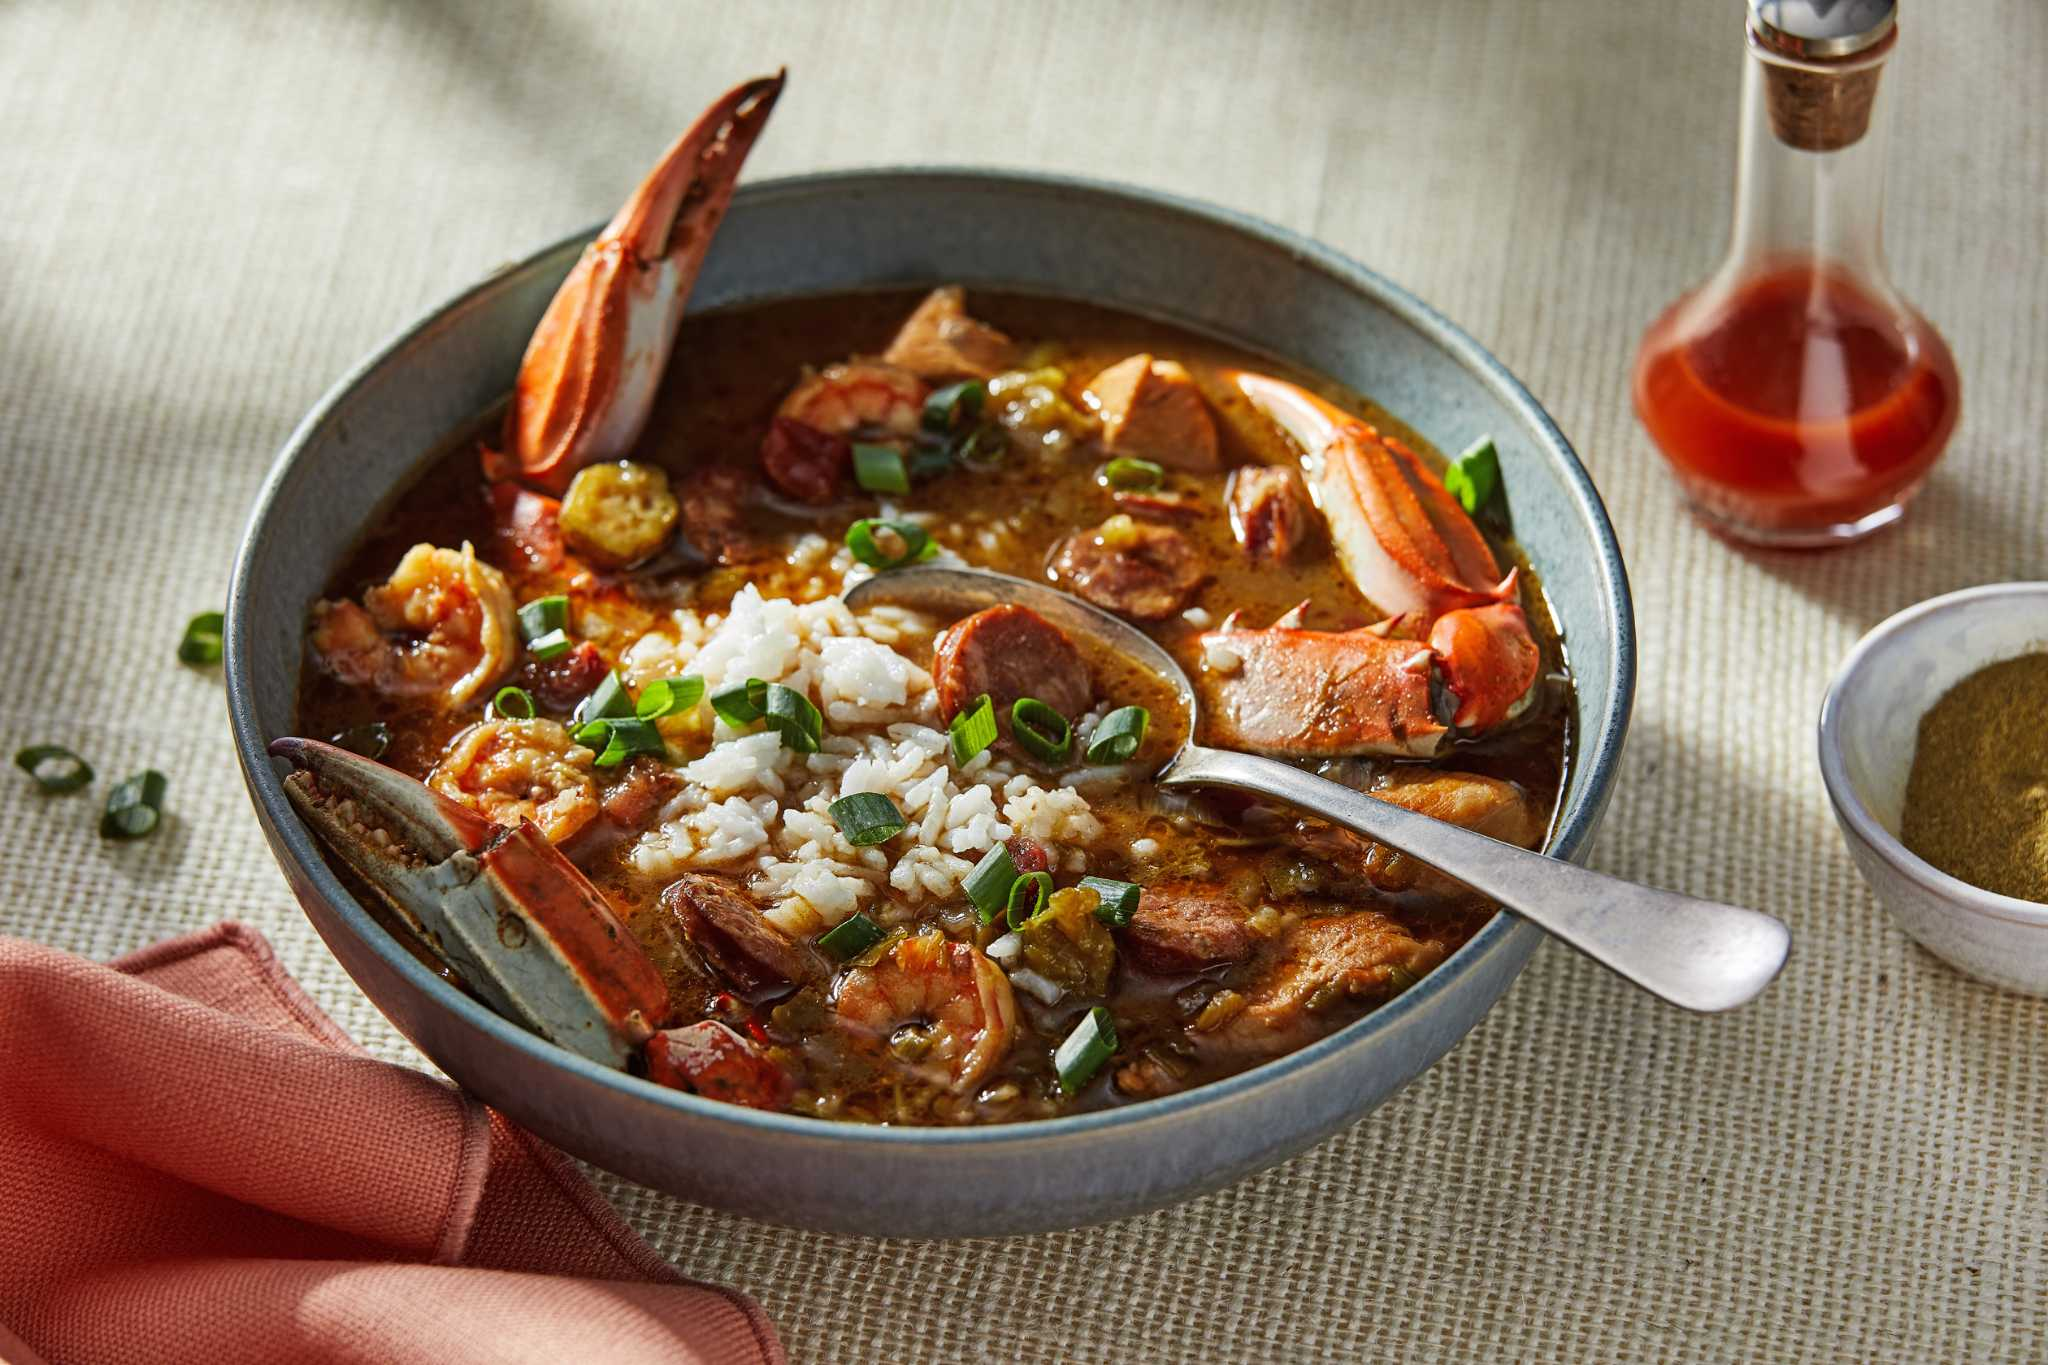 Have a taste of 'gumbo diplomacy' by making this Biden nominee's classic recipe